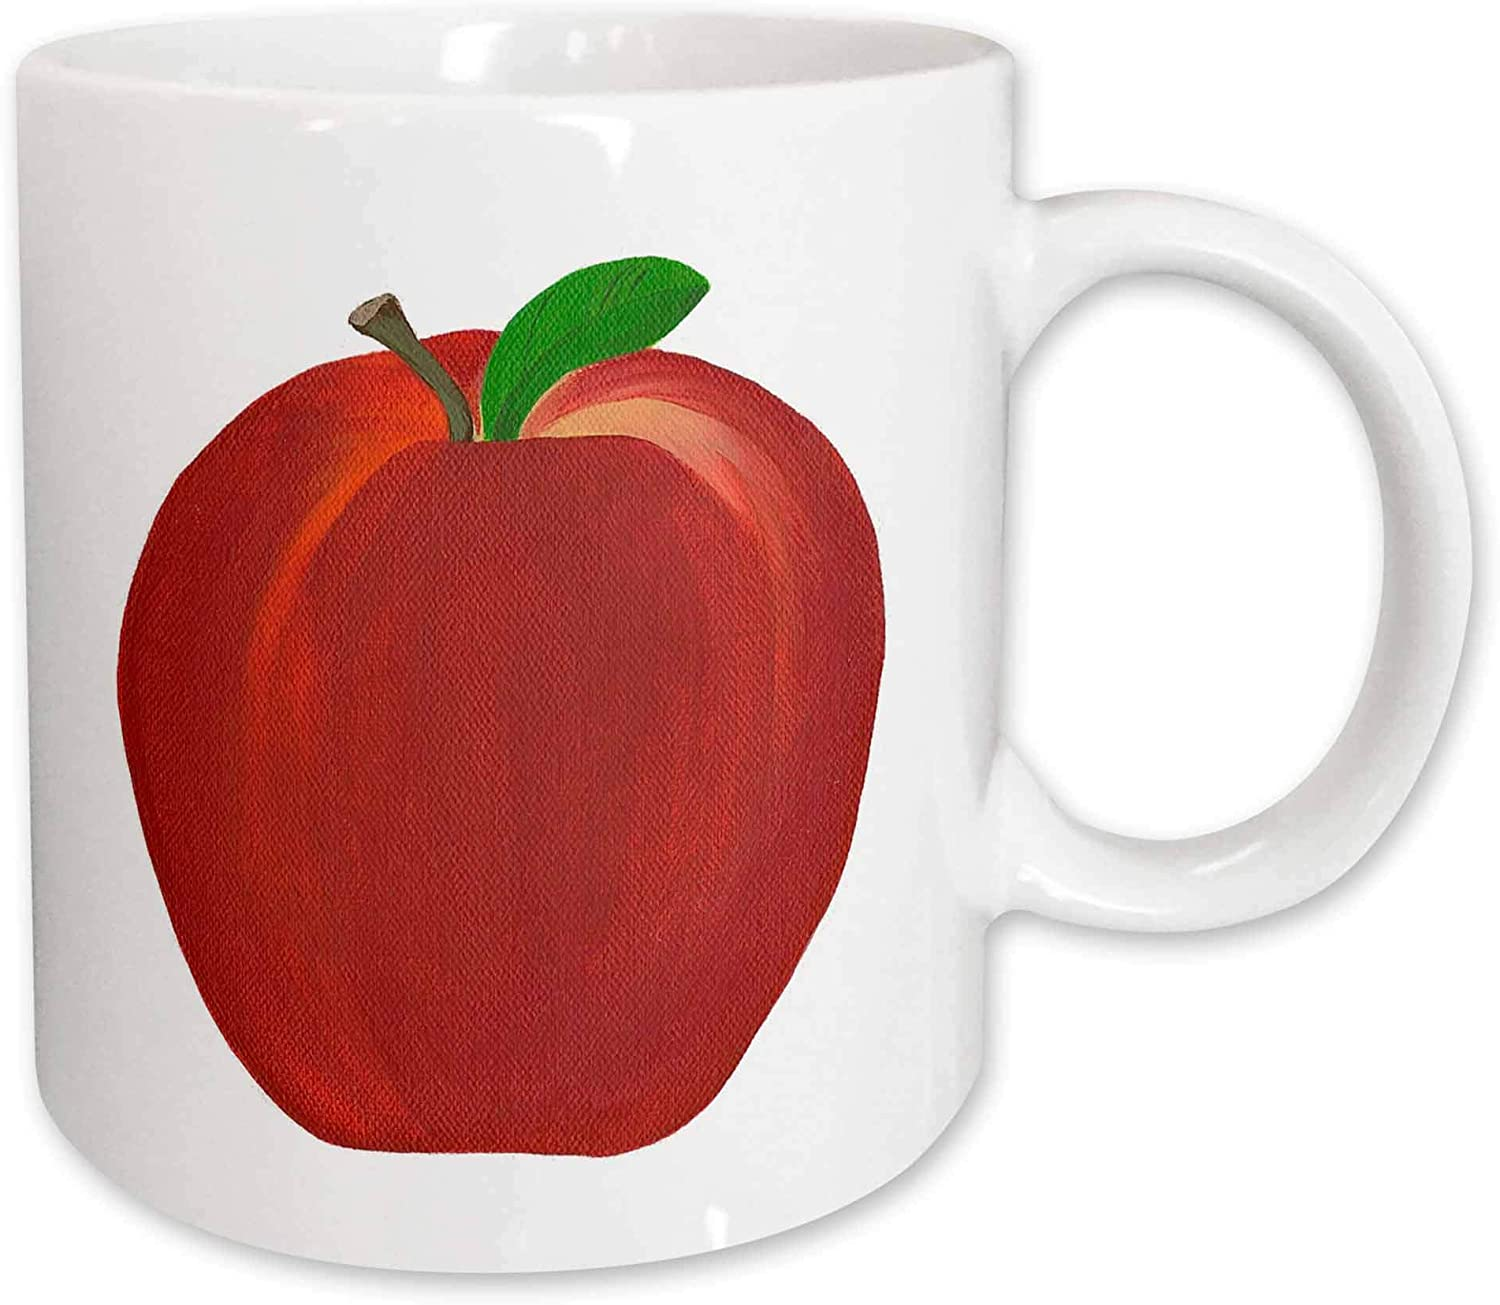 3dRose Red Apple Mug, 11-Ounce